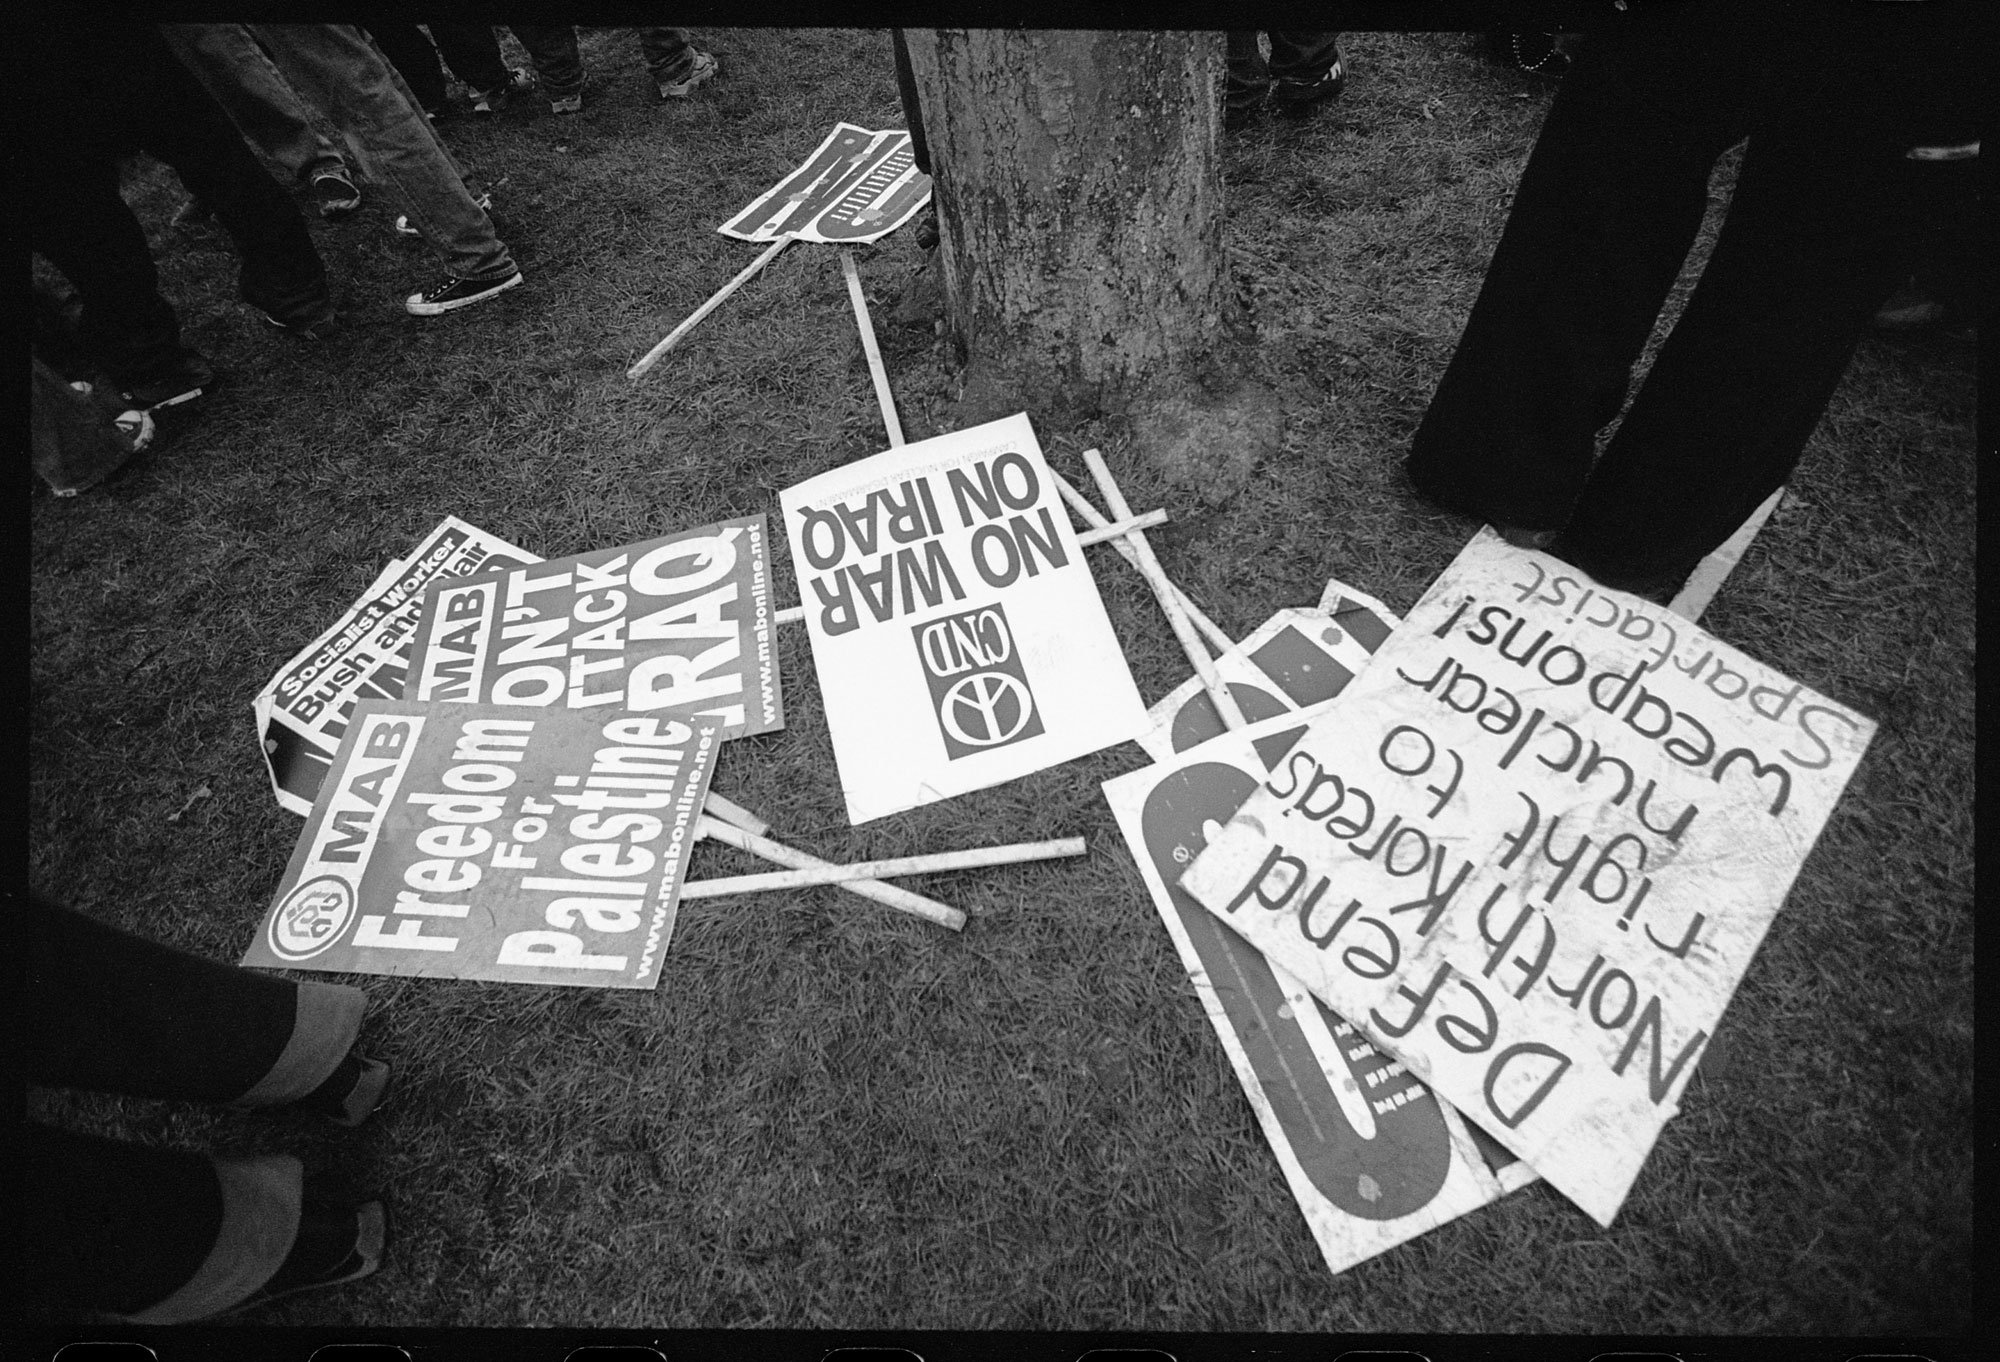 WEB_STW_anti-war-placards_feb-2003_dannyburrows